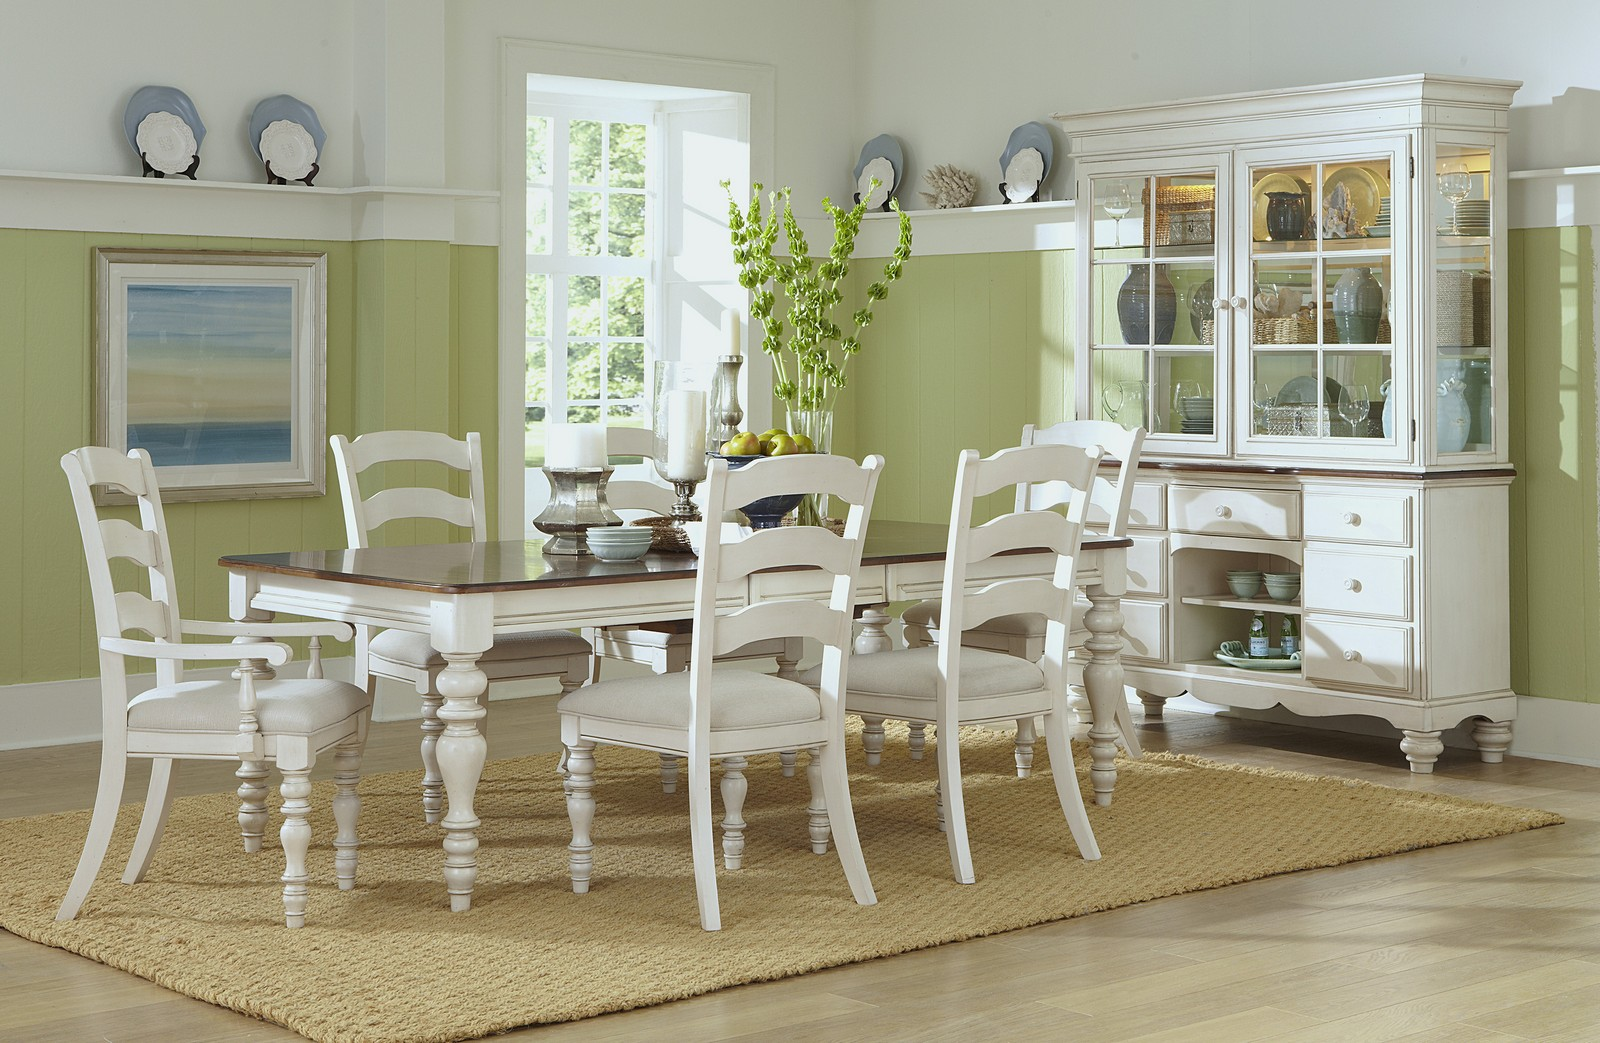 Superbe Hillsdale Pine Island 7 PC Dining Set With Ladder Back Chairs   Old White